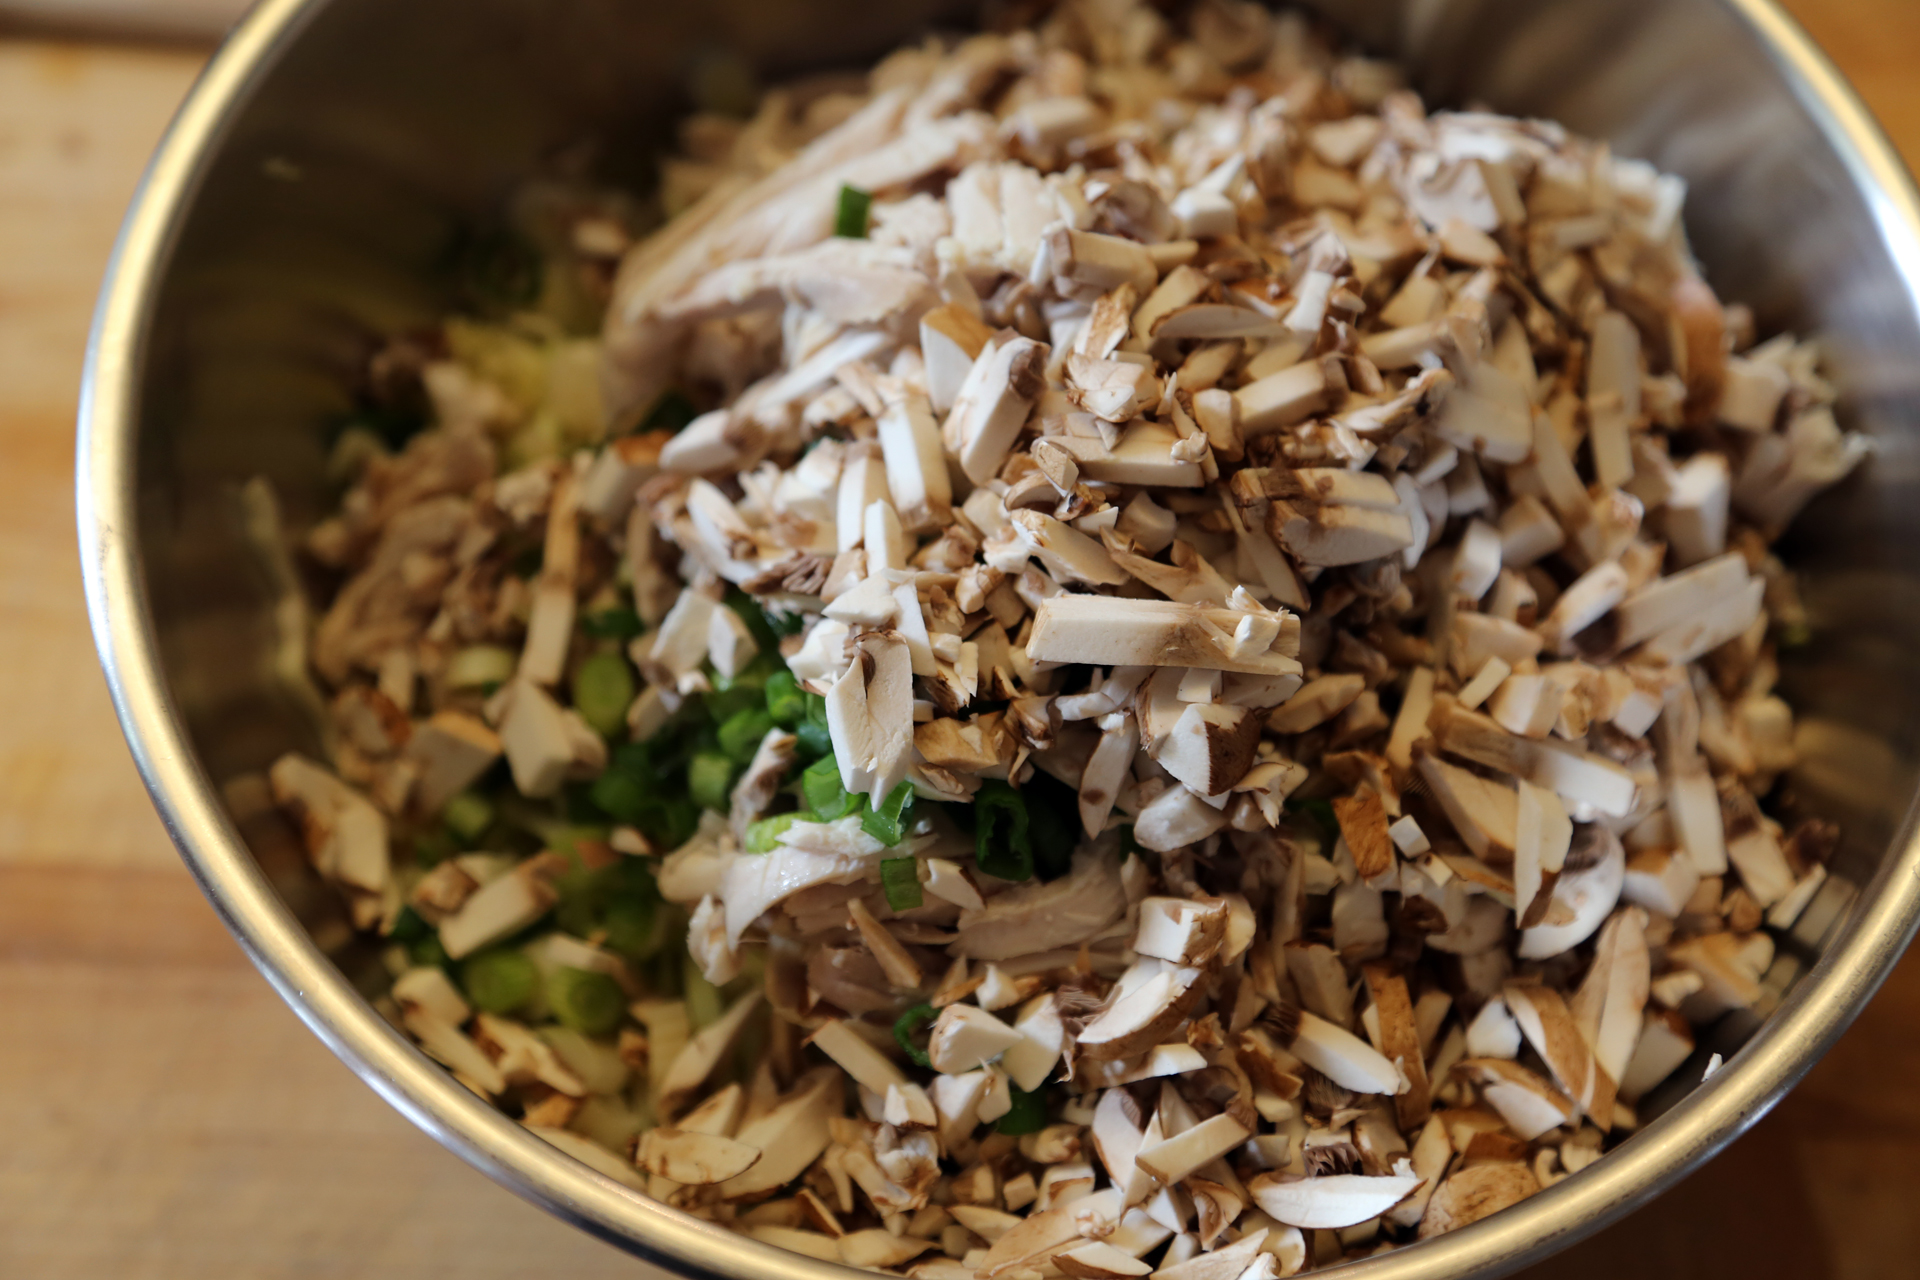 In a large mixing bowl, toss together the shredded chicken, cabbage, mushrooms, green onions, and water chestnuts.